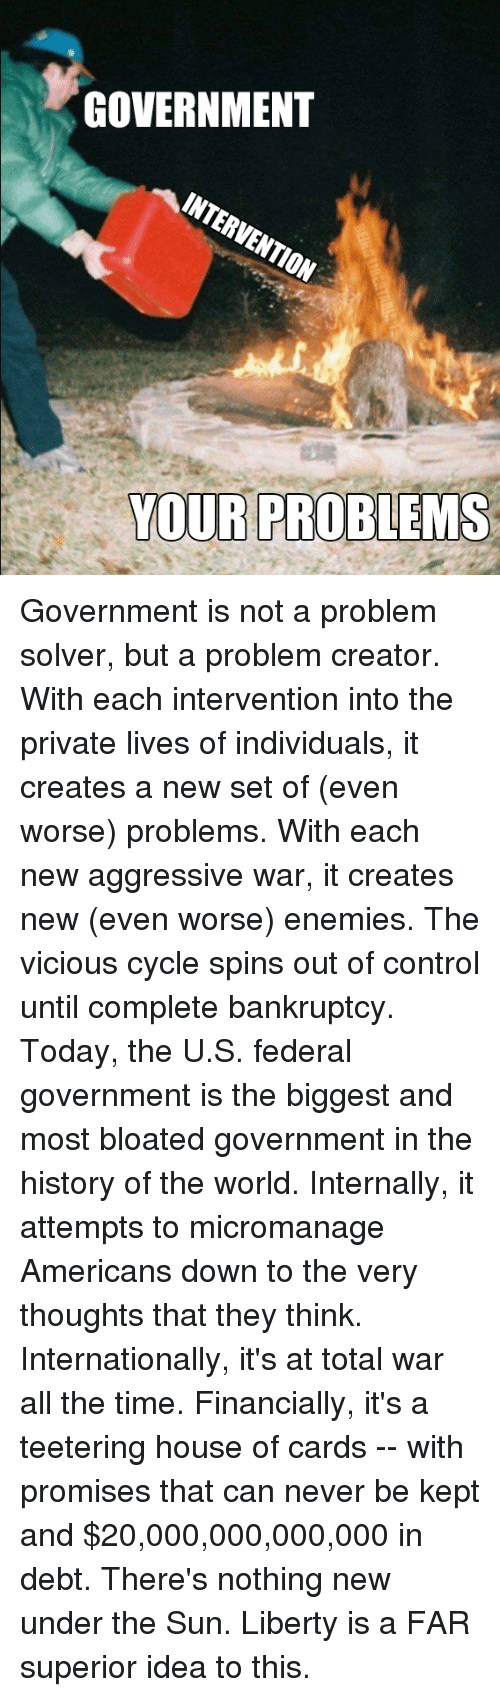 Dank, Control, and Bankruptcy: GOVERNMENT  INTERVENTION  YOUR PROBLEMS Government is not a problem solver, but a problem creator.  With each intervention into the private lives of individuals, it creates a new set of (even worse) problems.  With each new aggressive war, it creates new (even worse) enemies.  The vicious cycle spins out of control until complete bankruptcy.  Today, the U.S. federal government is the biggest and most bloated government in the history of the world.   Internally, it attempts to micromanage Americans down to the very thoughts that they think.  Internationally, it's at total war all the time.  Financially, it's a teetering house of cards --  with promises that can never be kept and $20,000,000,000,000 in debt.  There's nothing new under the Sun.  Liberty is a FAR superior idea to this.